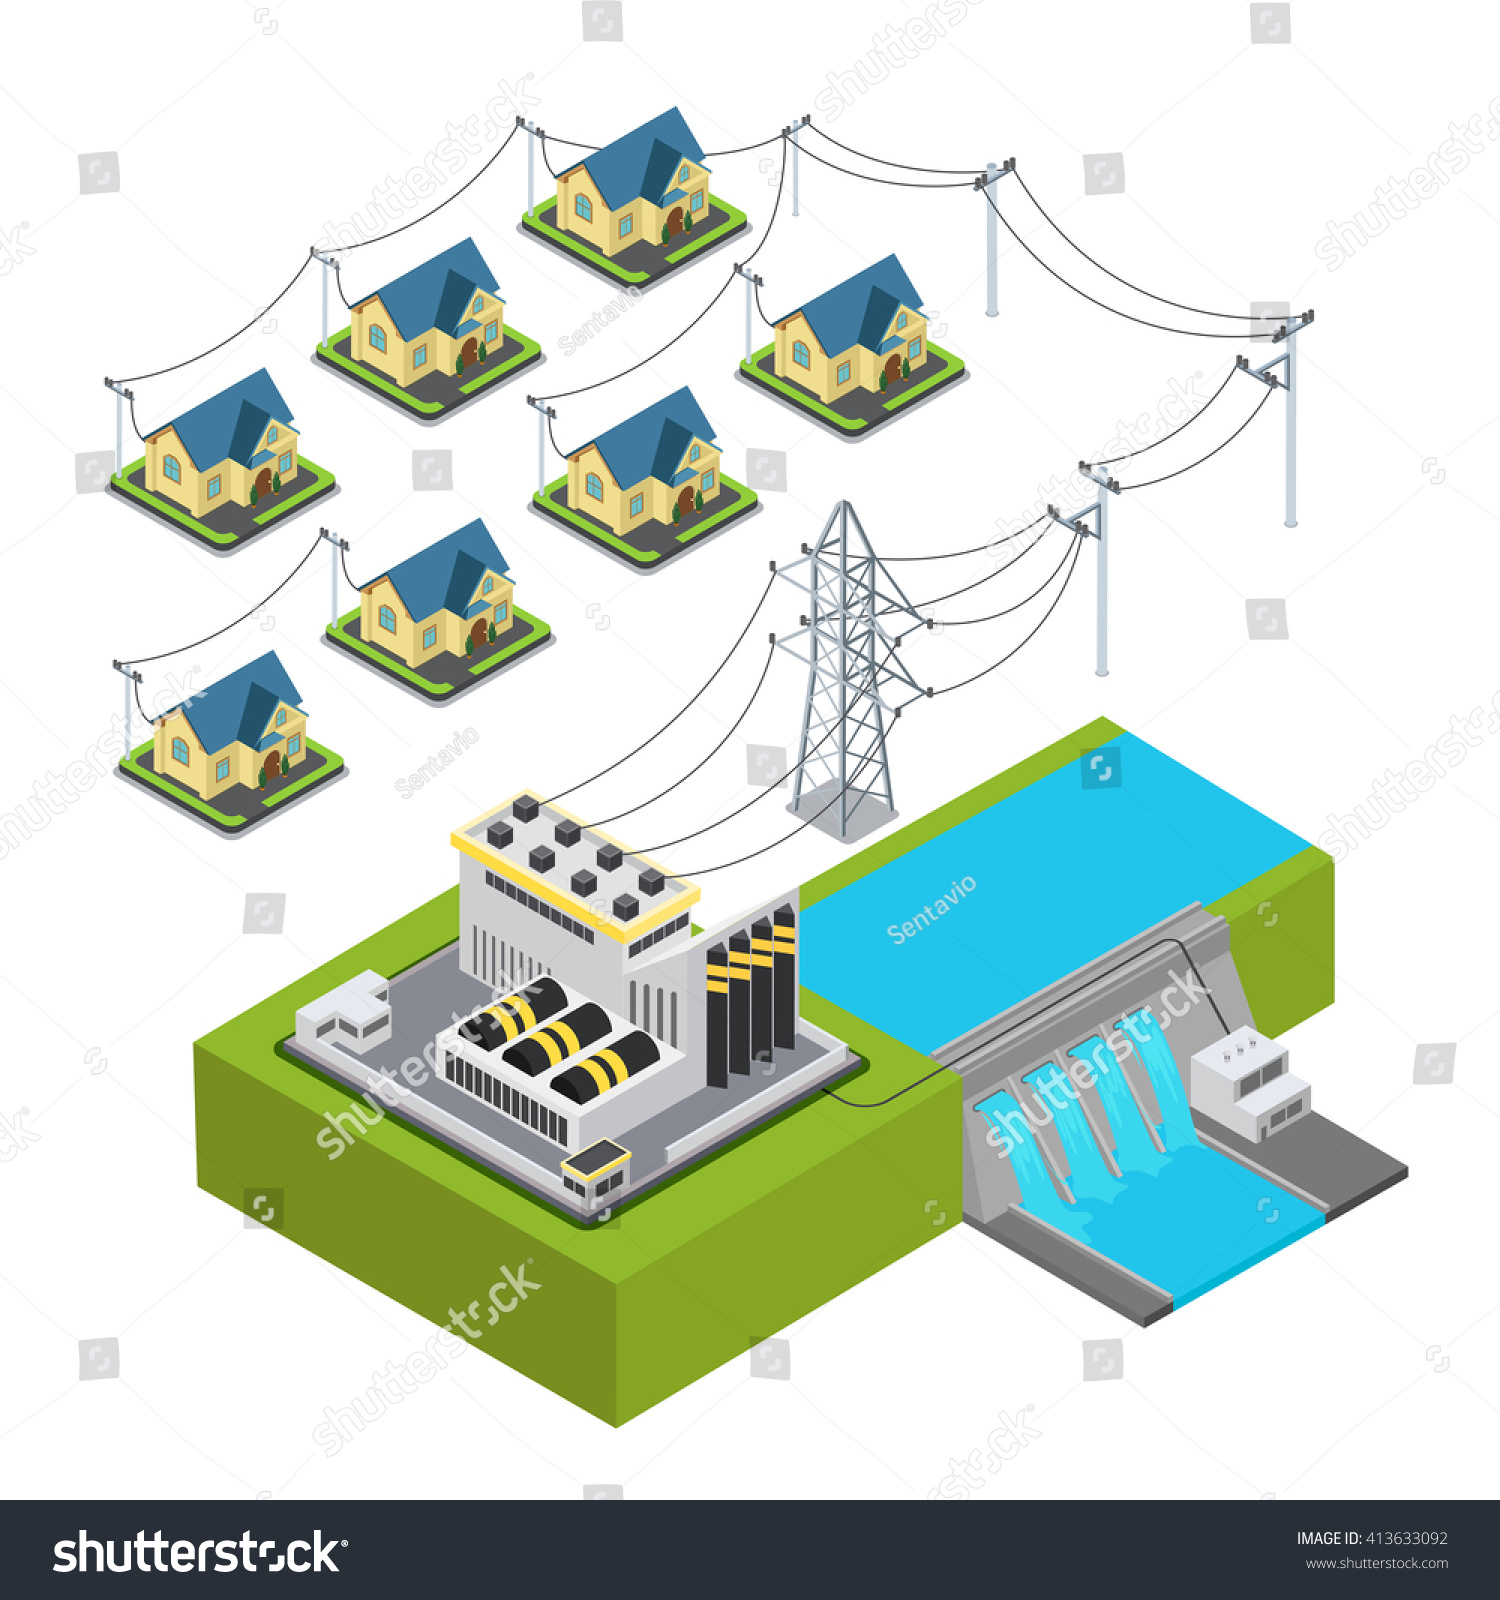 Water power plant energy hydro station green village supply cycle  infographic concept. Flat 3d isometry